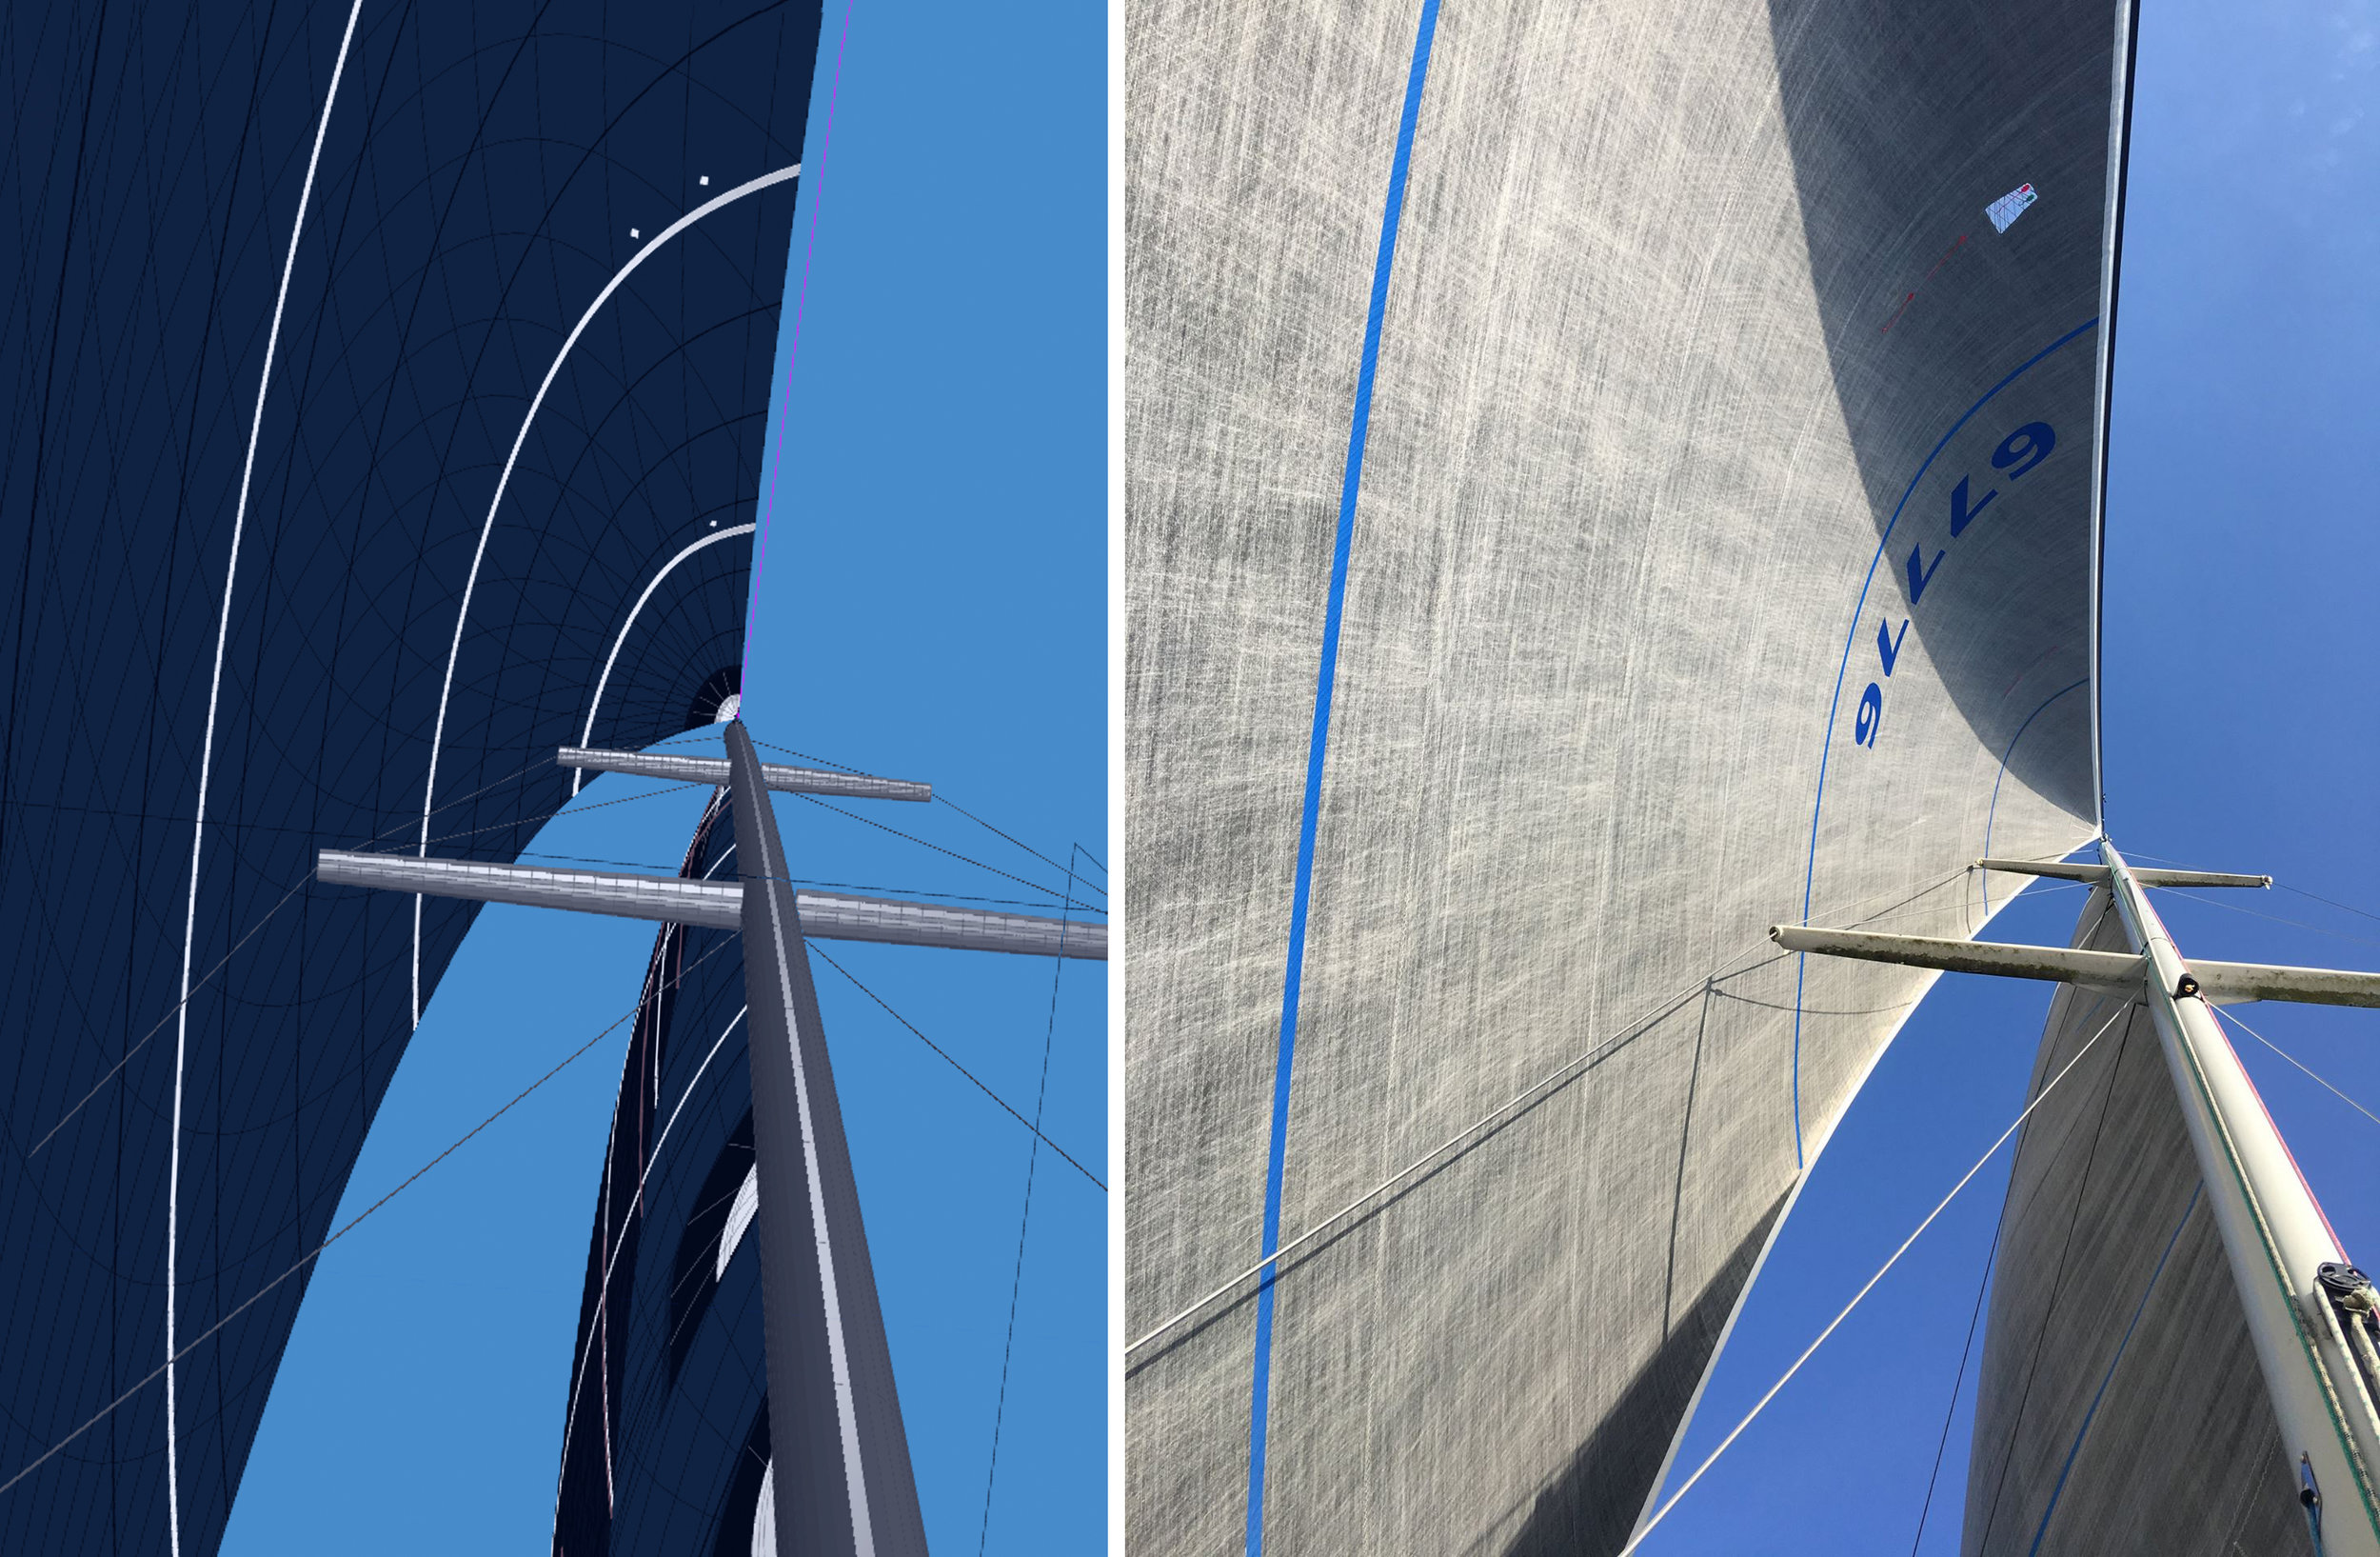 On the left is a computer 3D rendering of a Light No. 1 Genoa design. On the right is the same sail flying. The design and the completed sail a re virtual match.